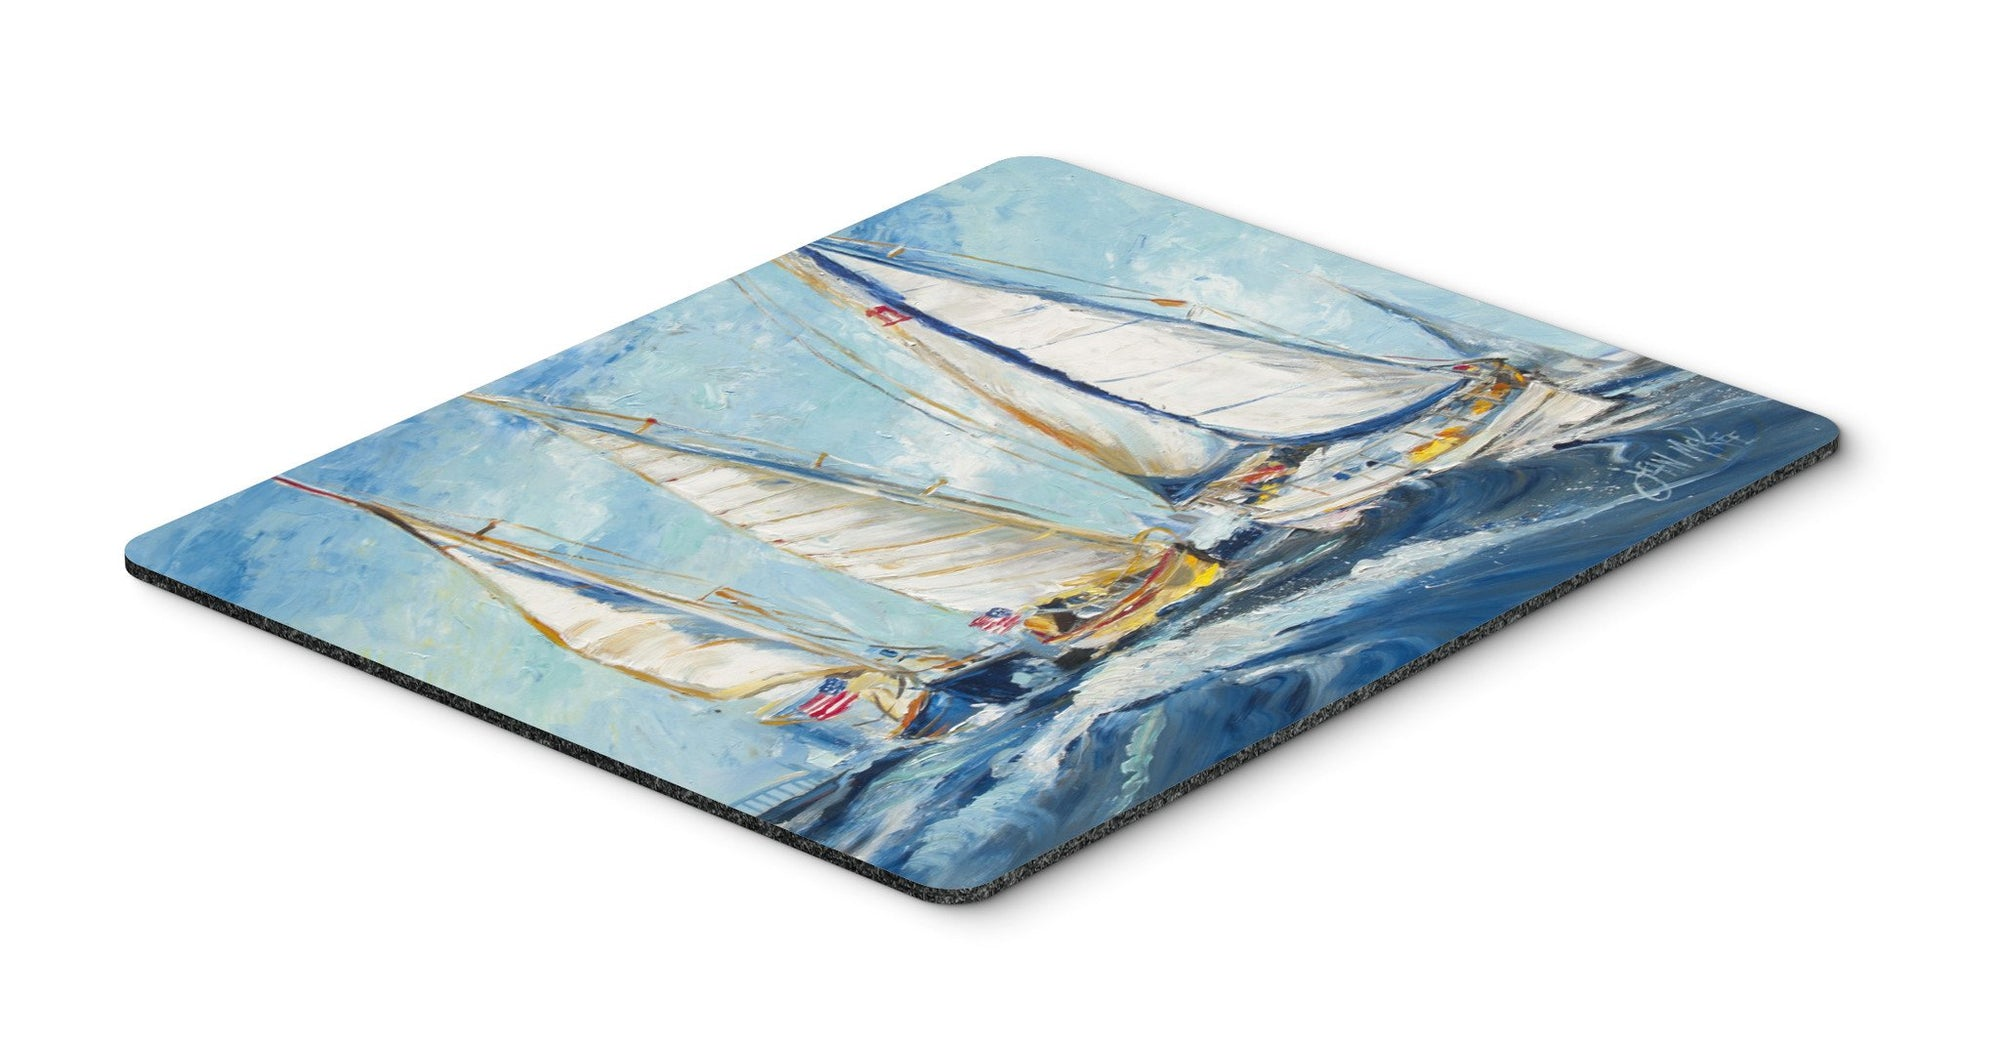 Roll me over Sailboats Mouse Pad, Hot Pad or Trivet JMK1027MP by Caroline's Treasures